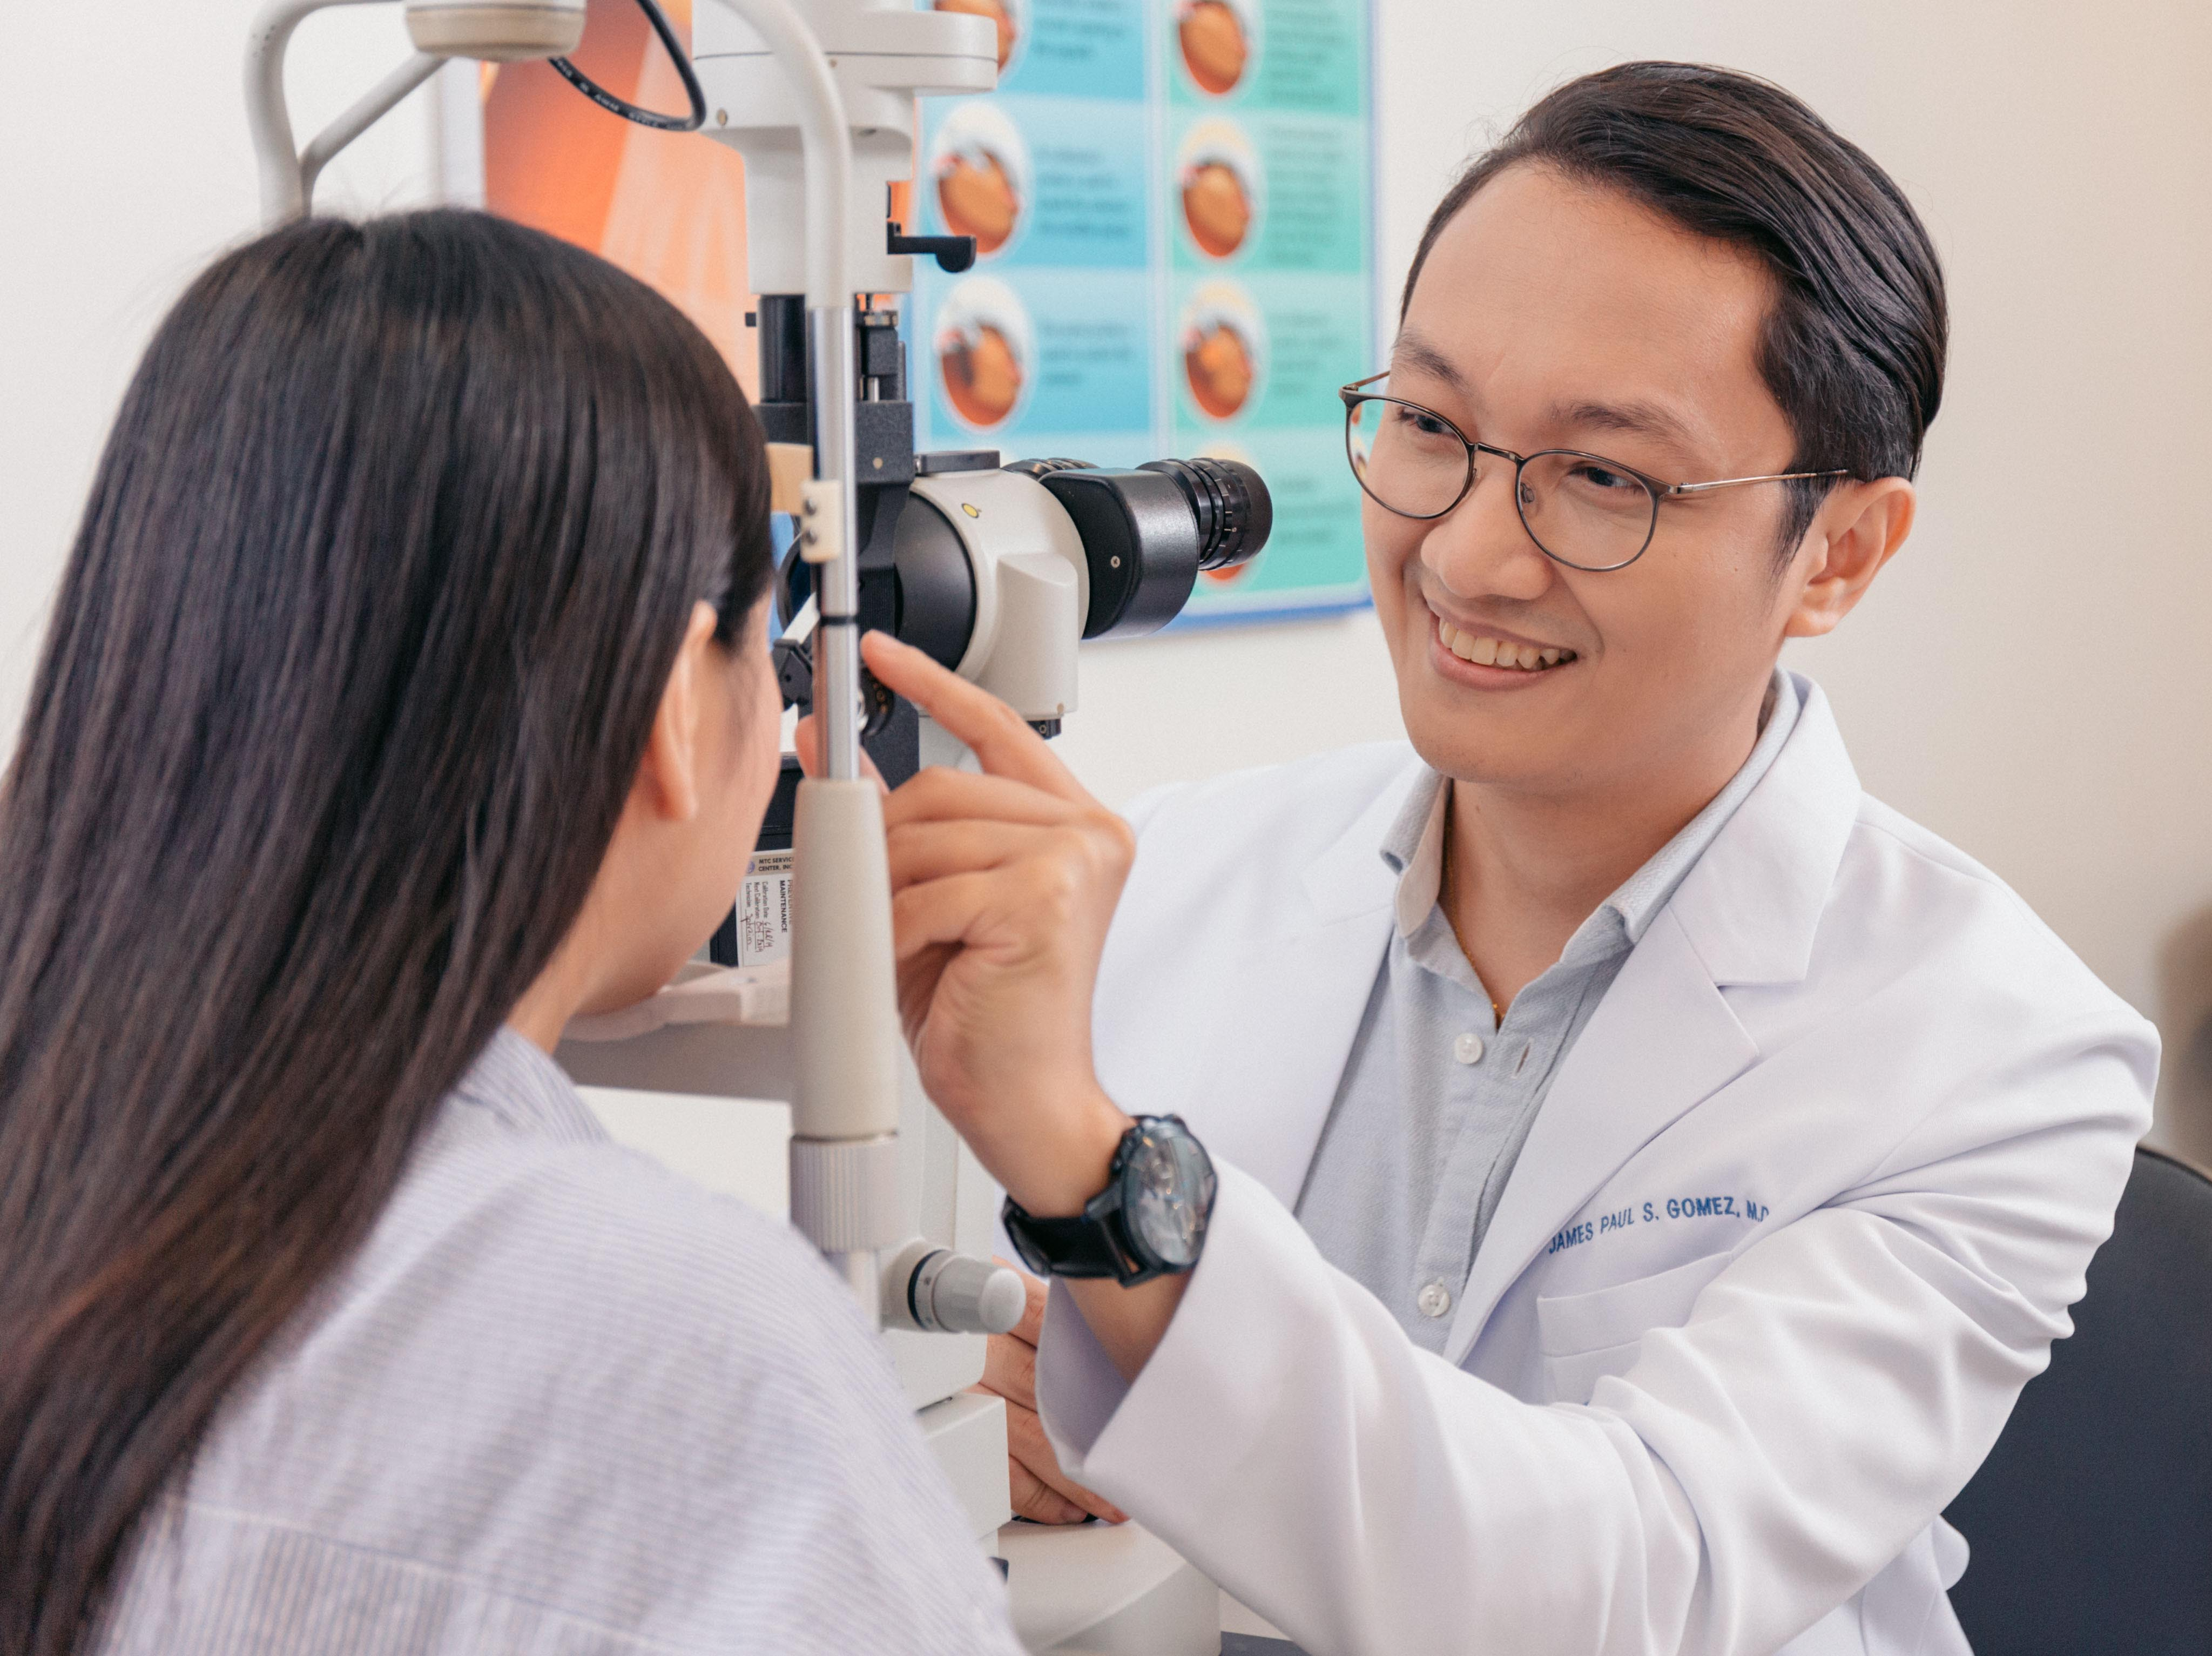 Glaucoma: The sneak thief of sight